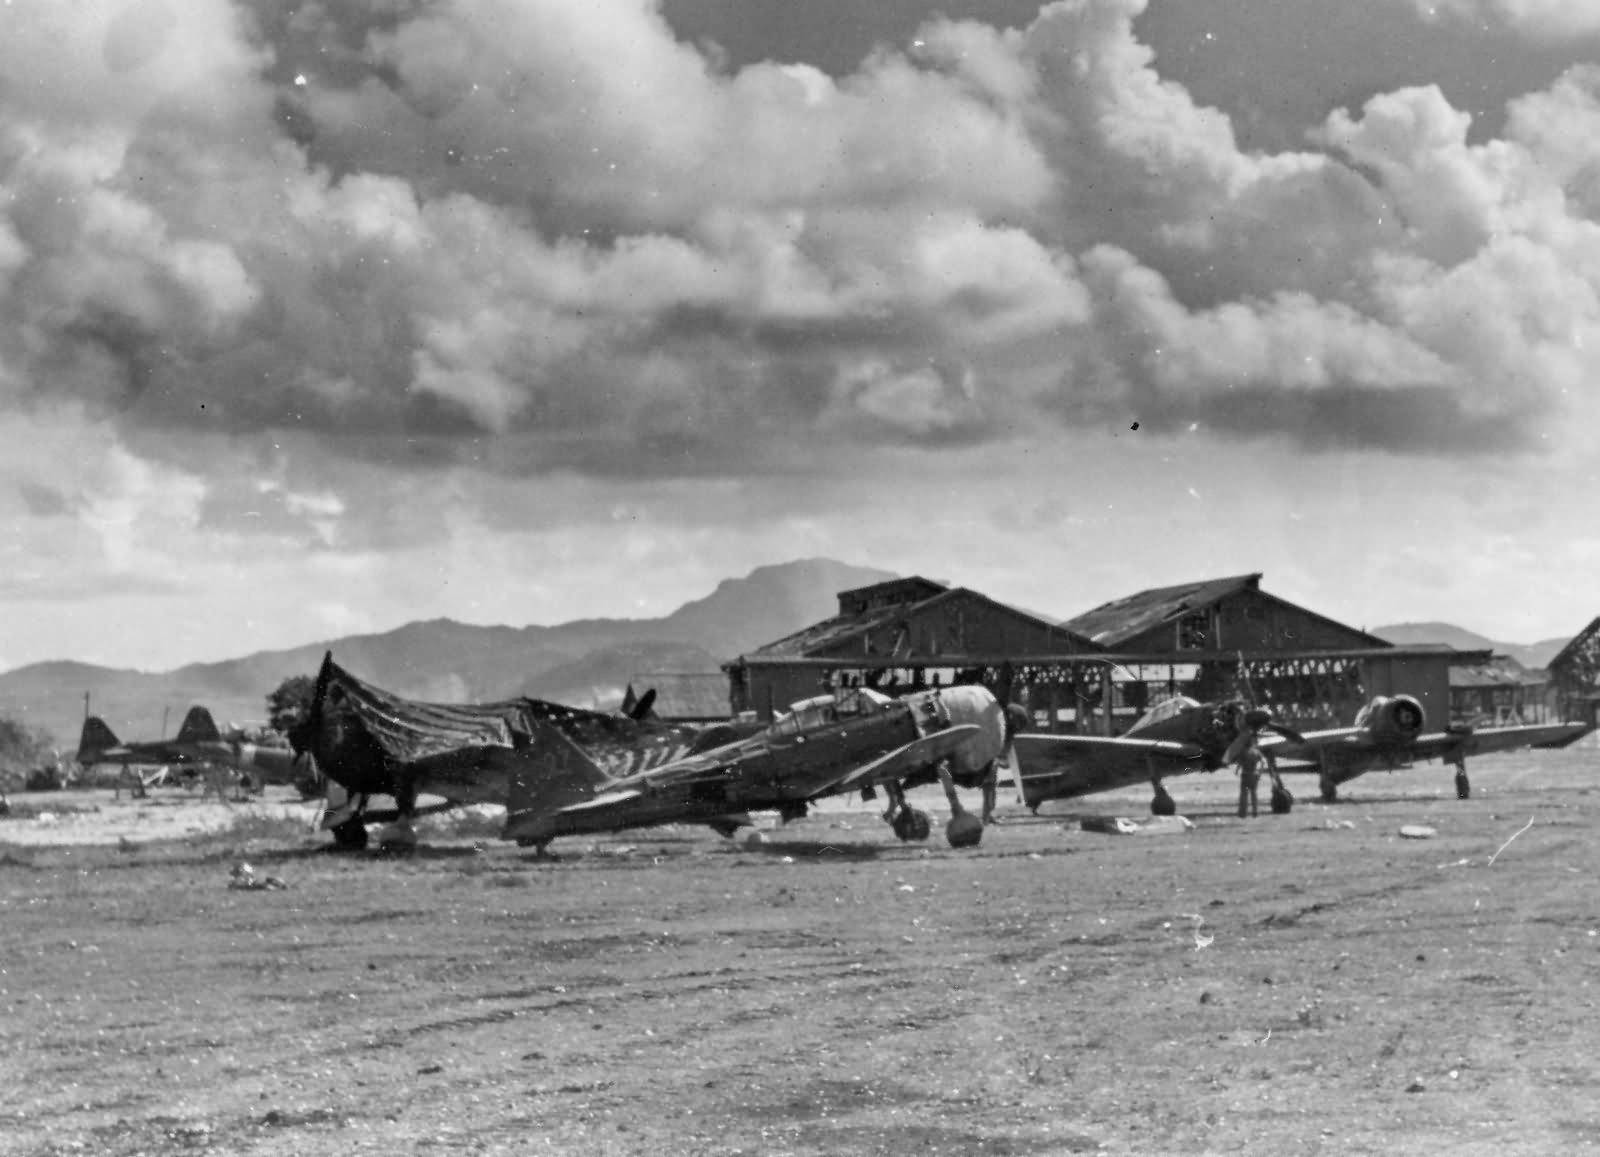 A6M_Zero_fighters_captured_on_Saipan_1944.jpg